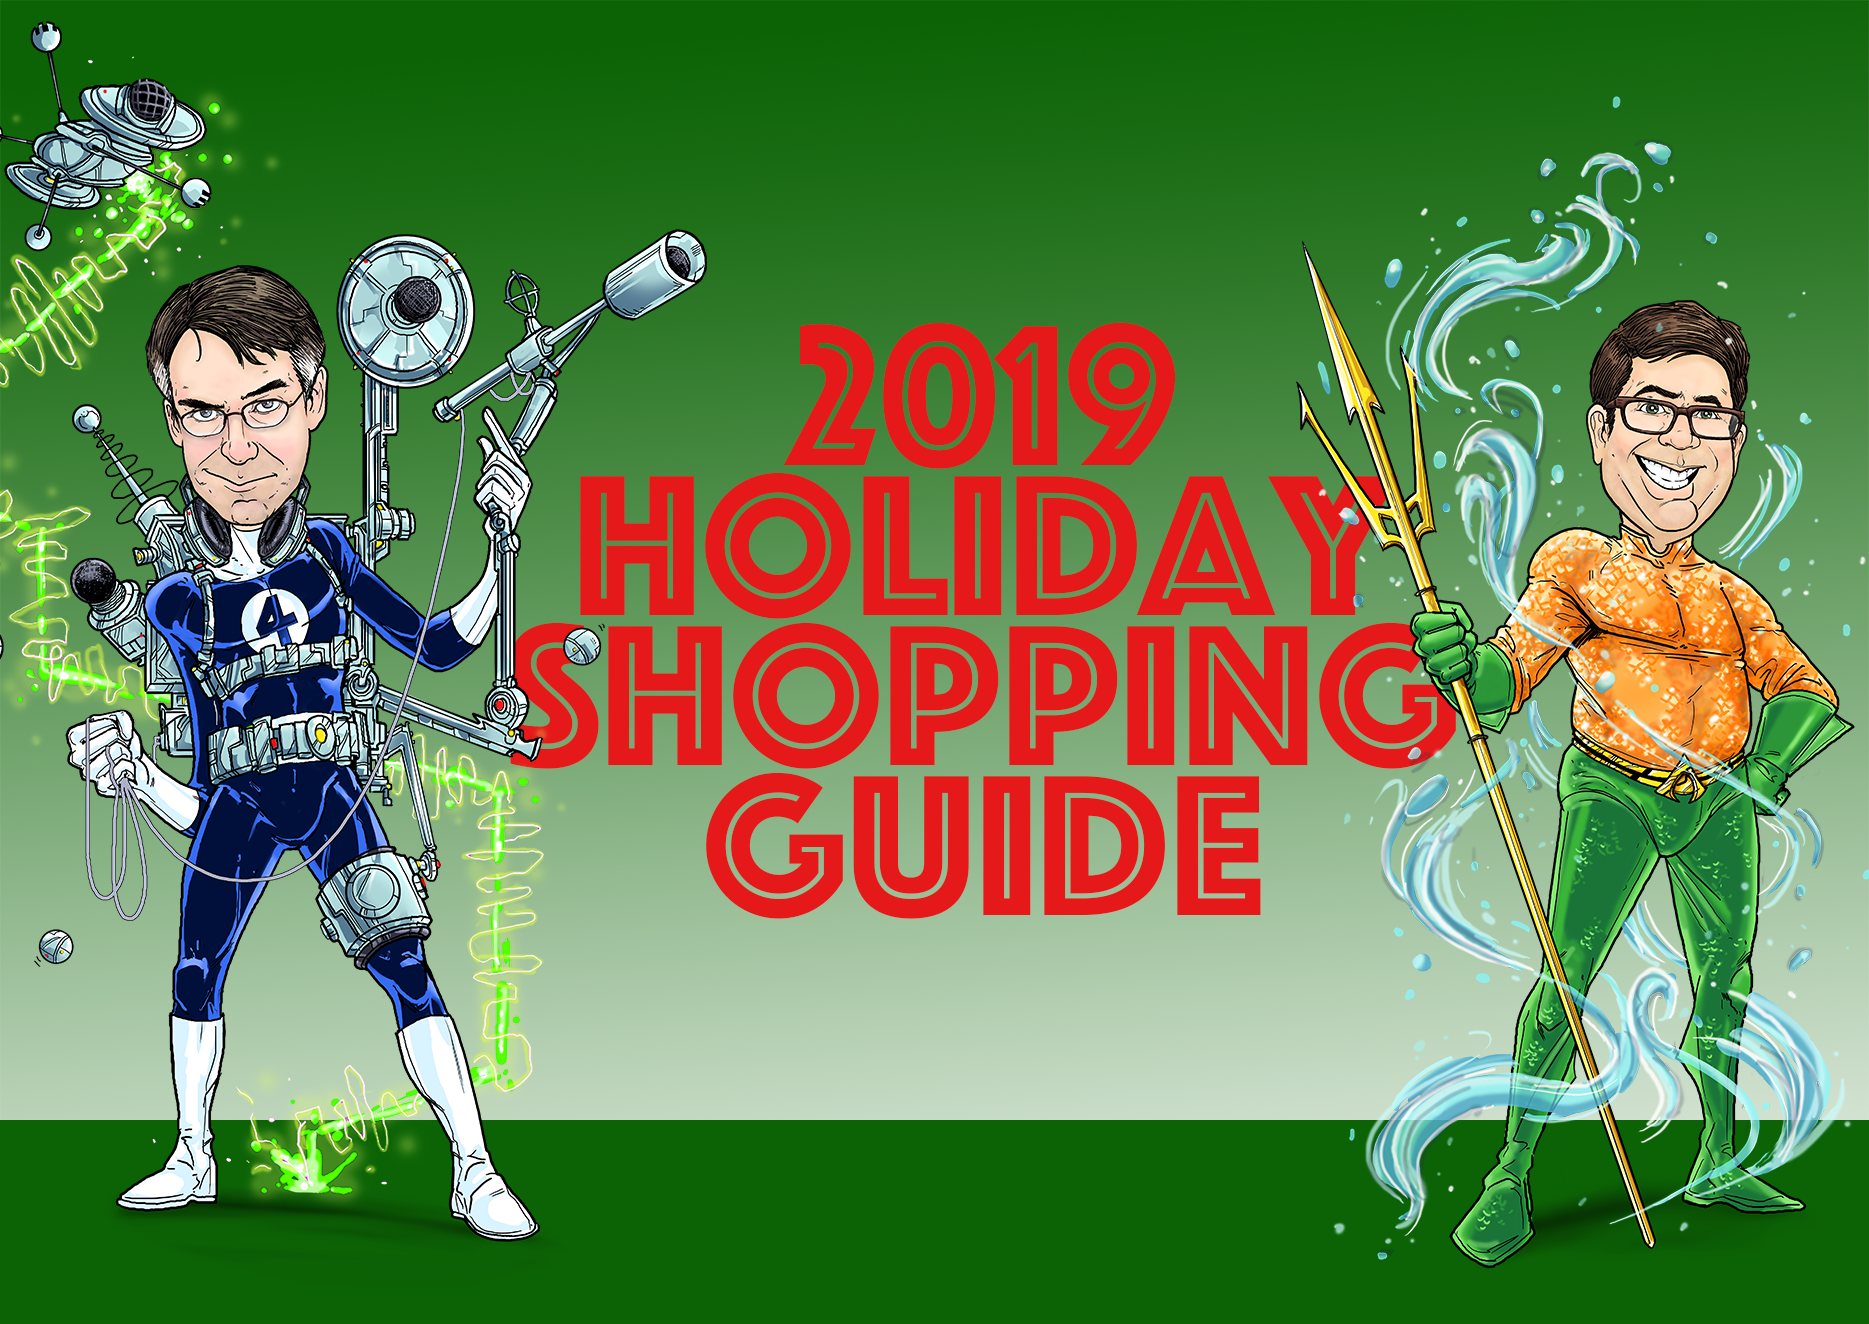 Fanboy Holiday Gift Guide